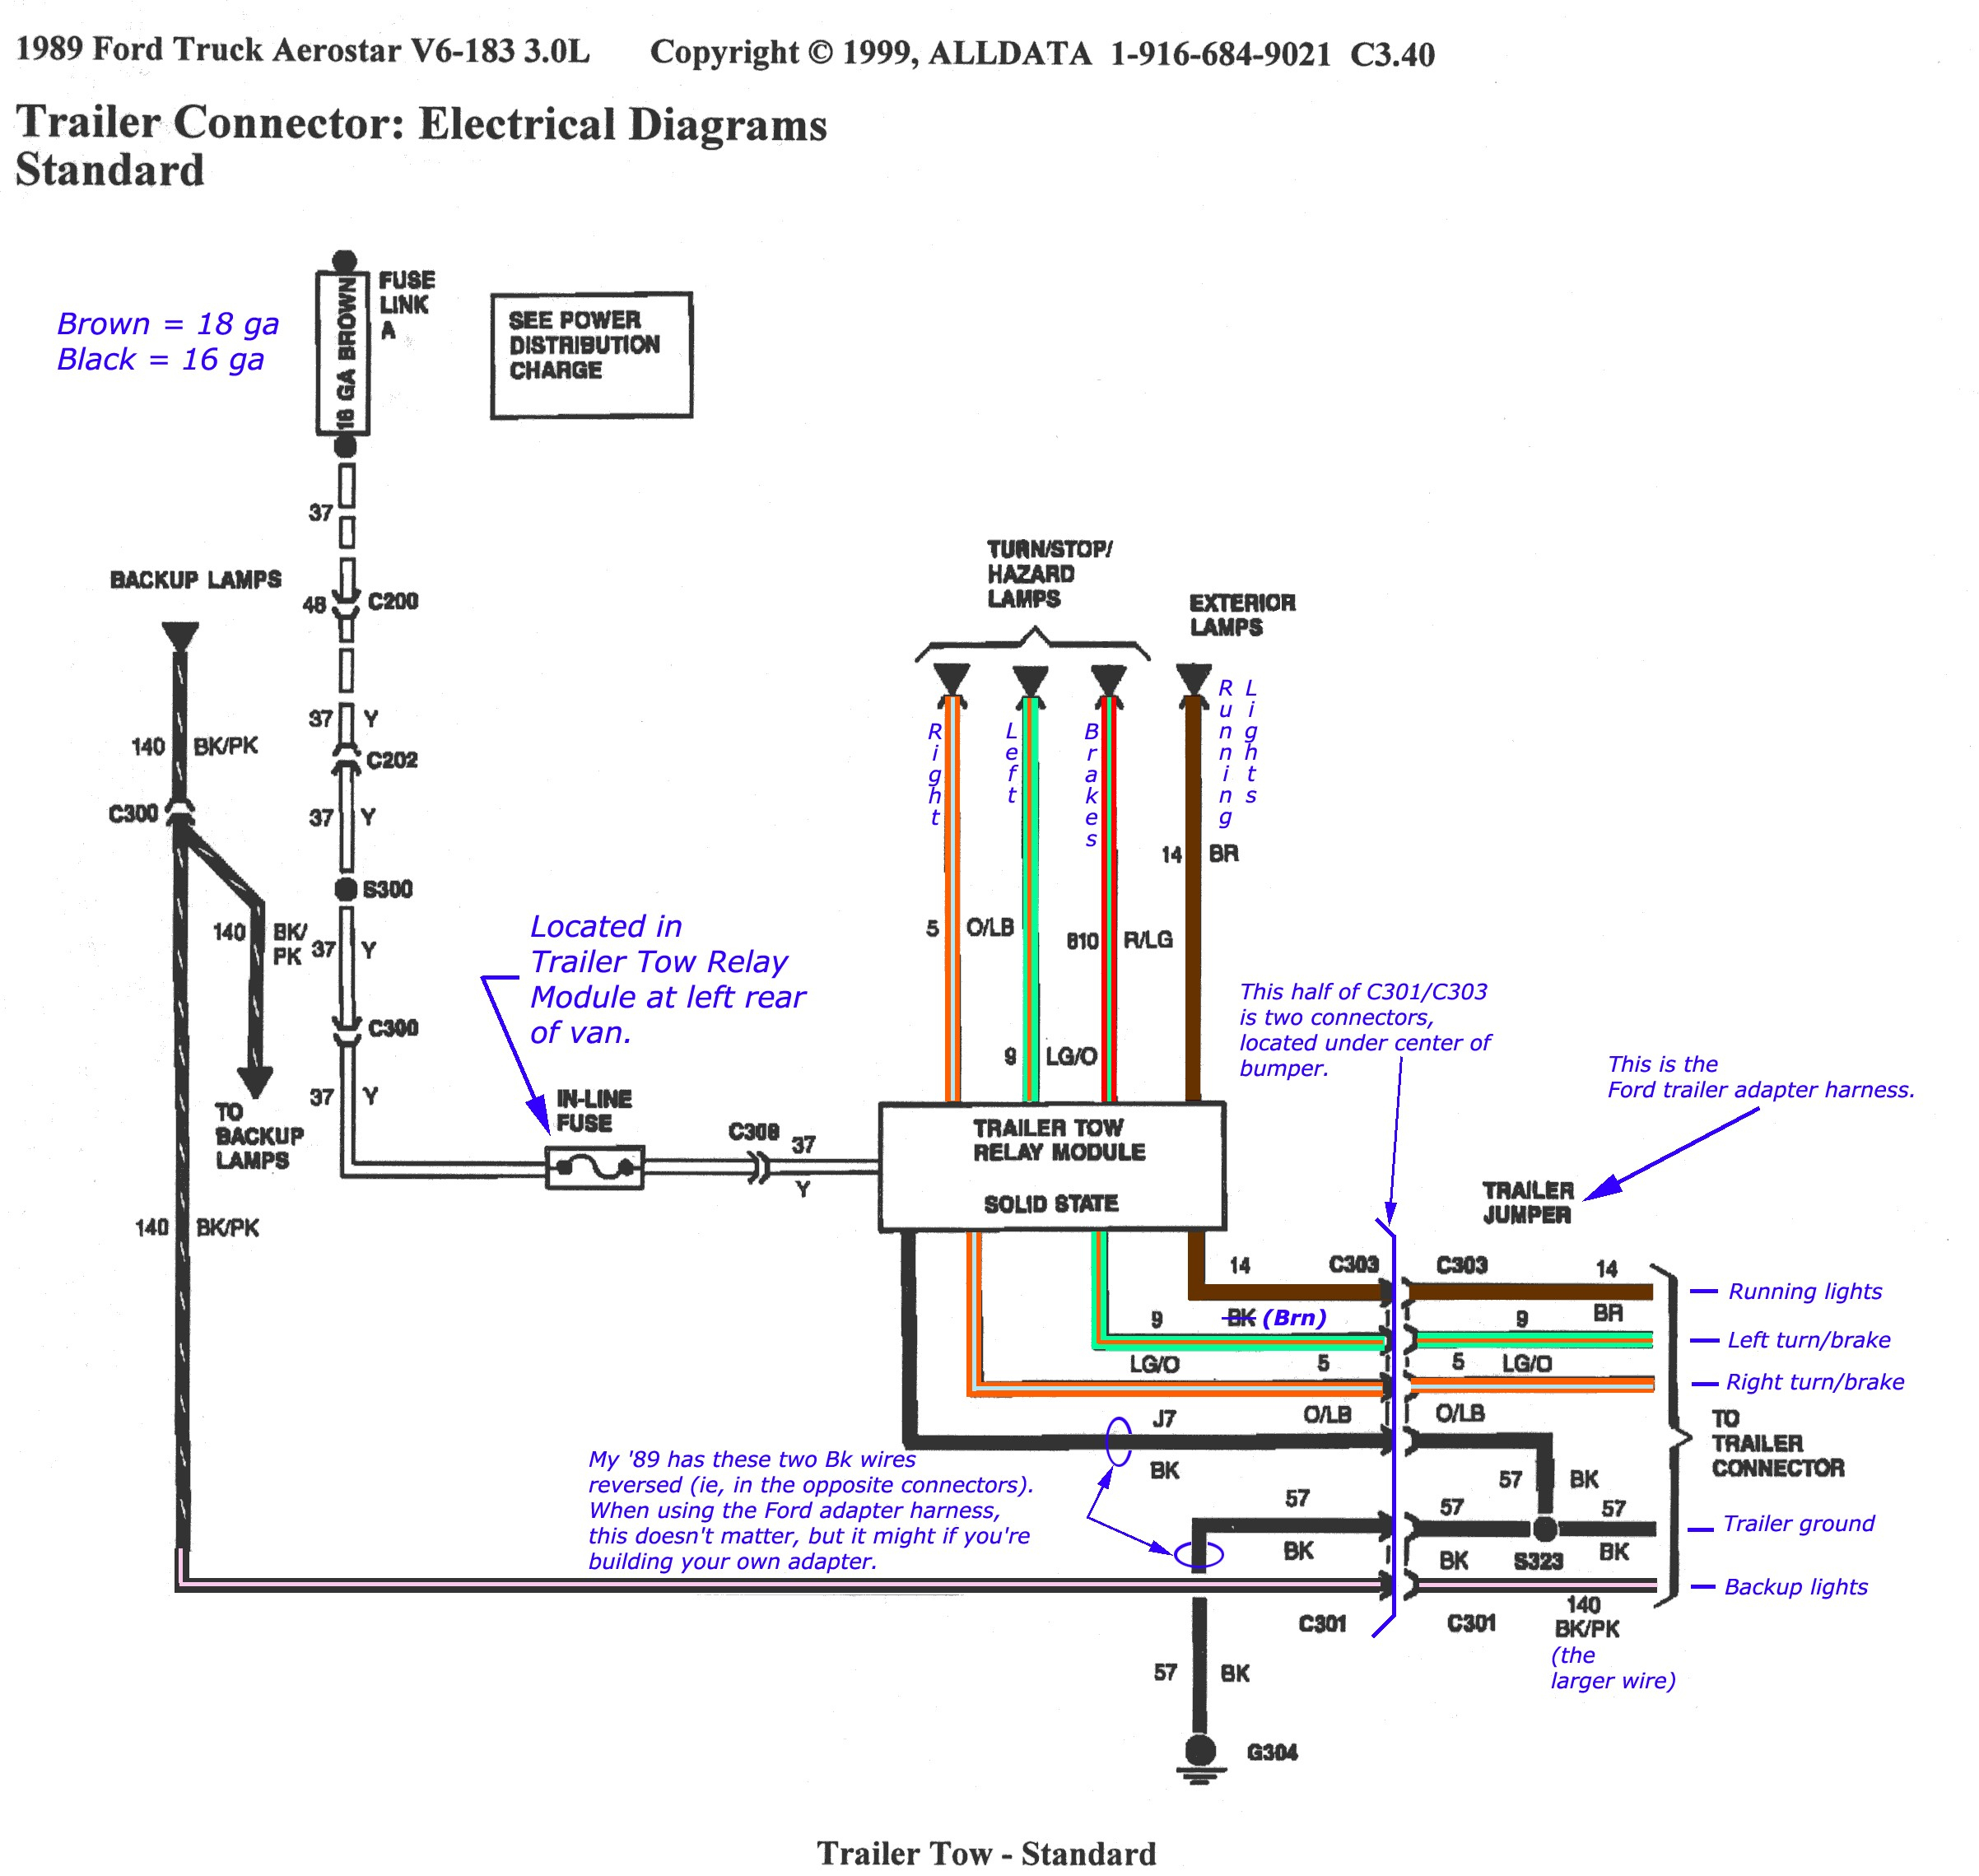 1997 F150 Trailer Wiring - Data Wiring Diagram Detailed - Electric Trailer Brake Wiring Diagram